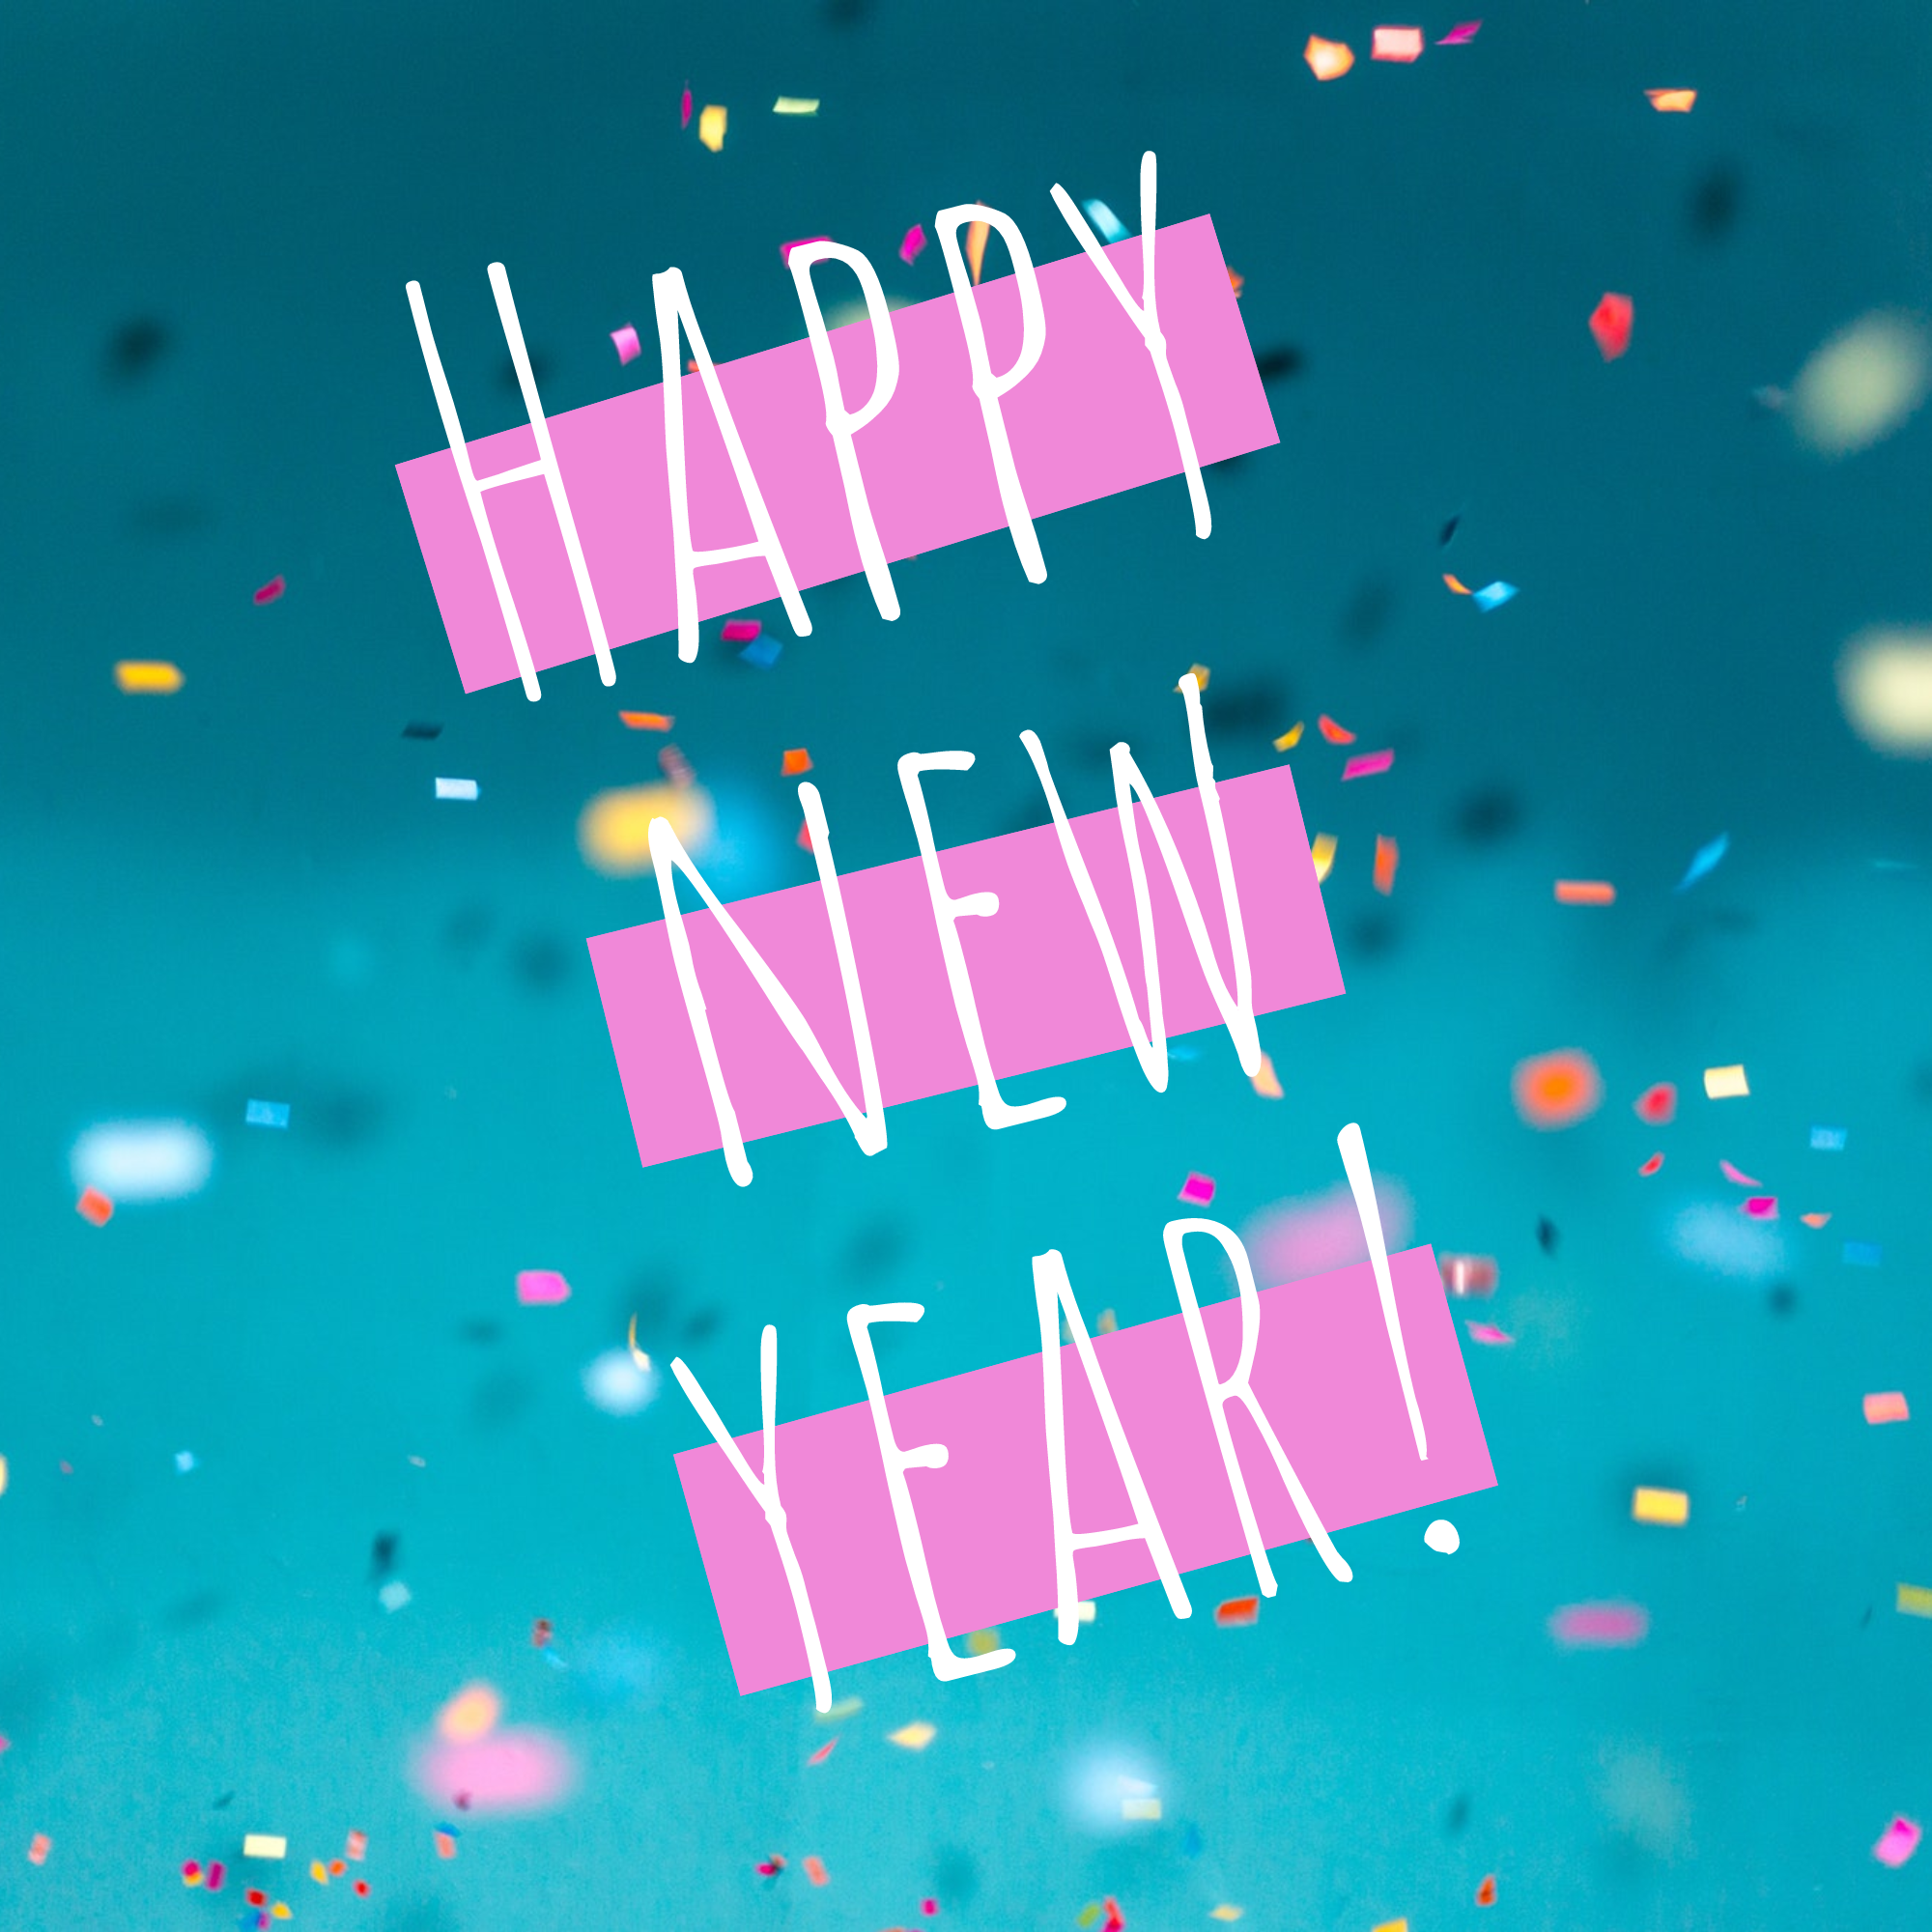 Happy New Year 2021 Images for Instagram